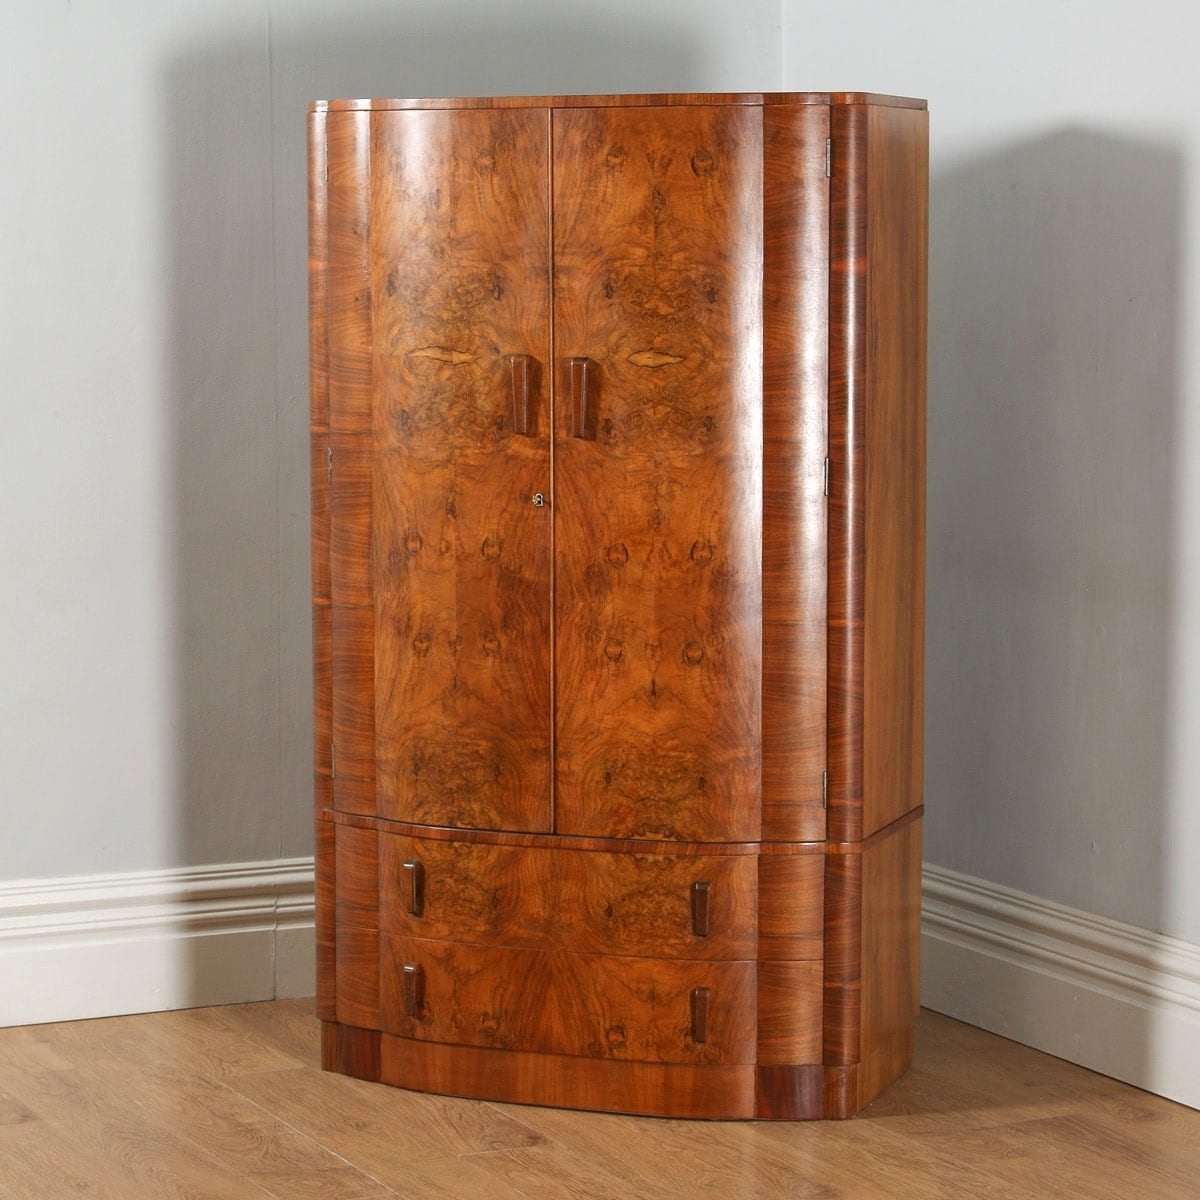 Antique English Art Deco Burr Walnut Bow Front Cloud Design With Preferred Antique Single Wardrobes (View 14 of 15)